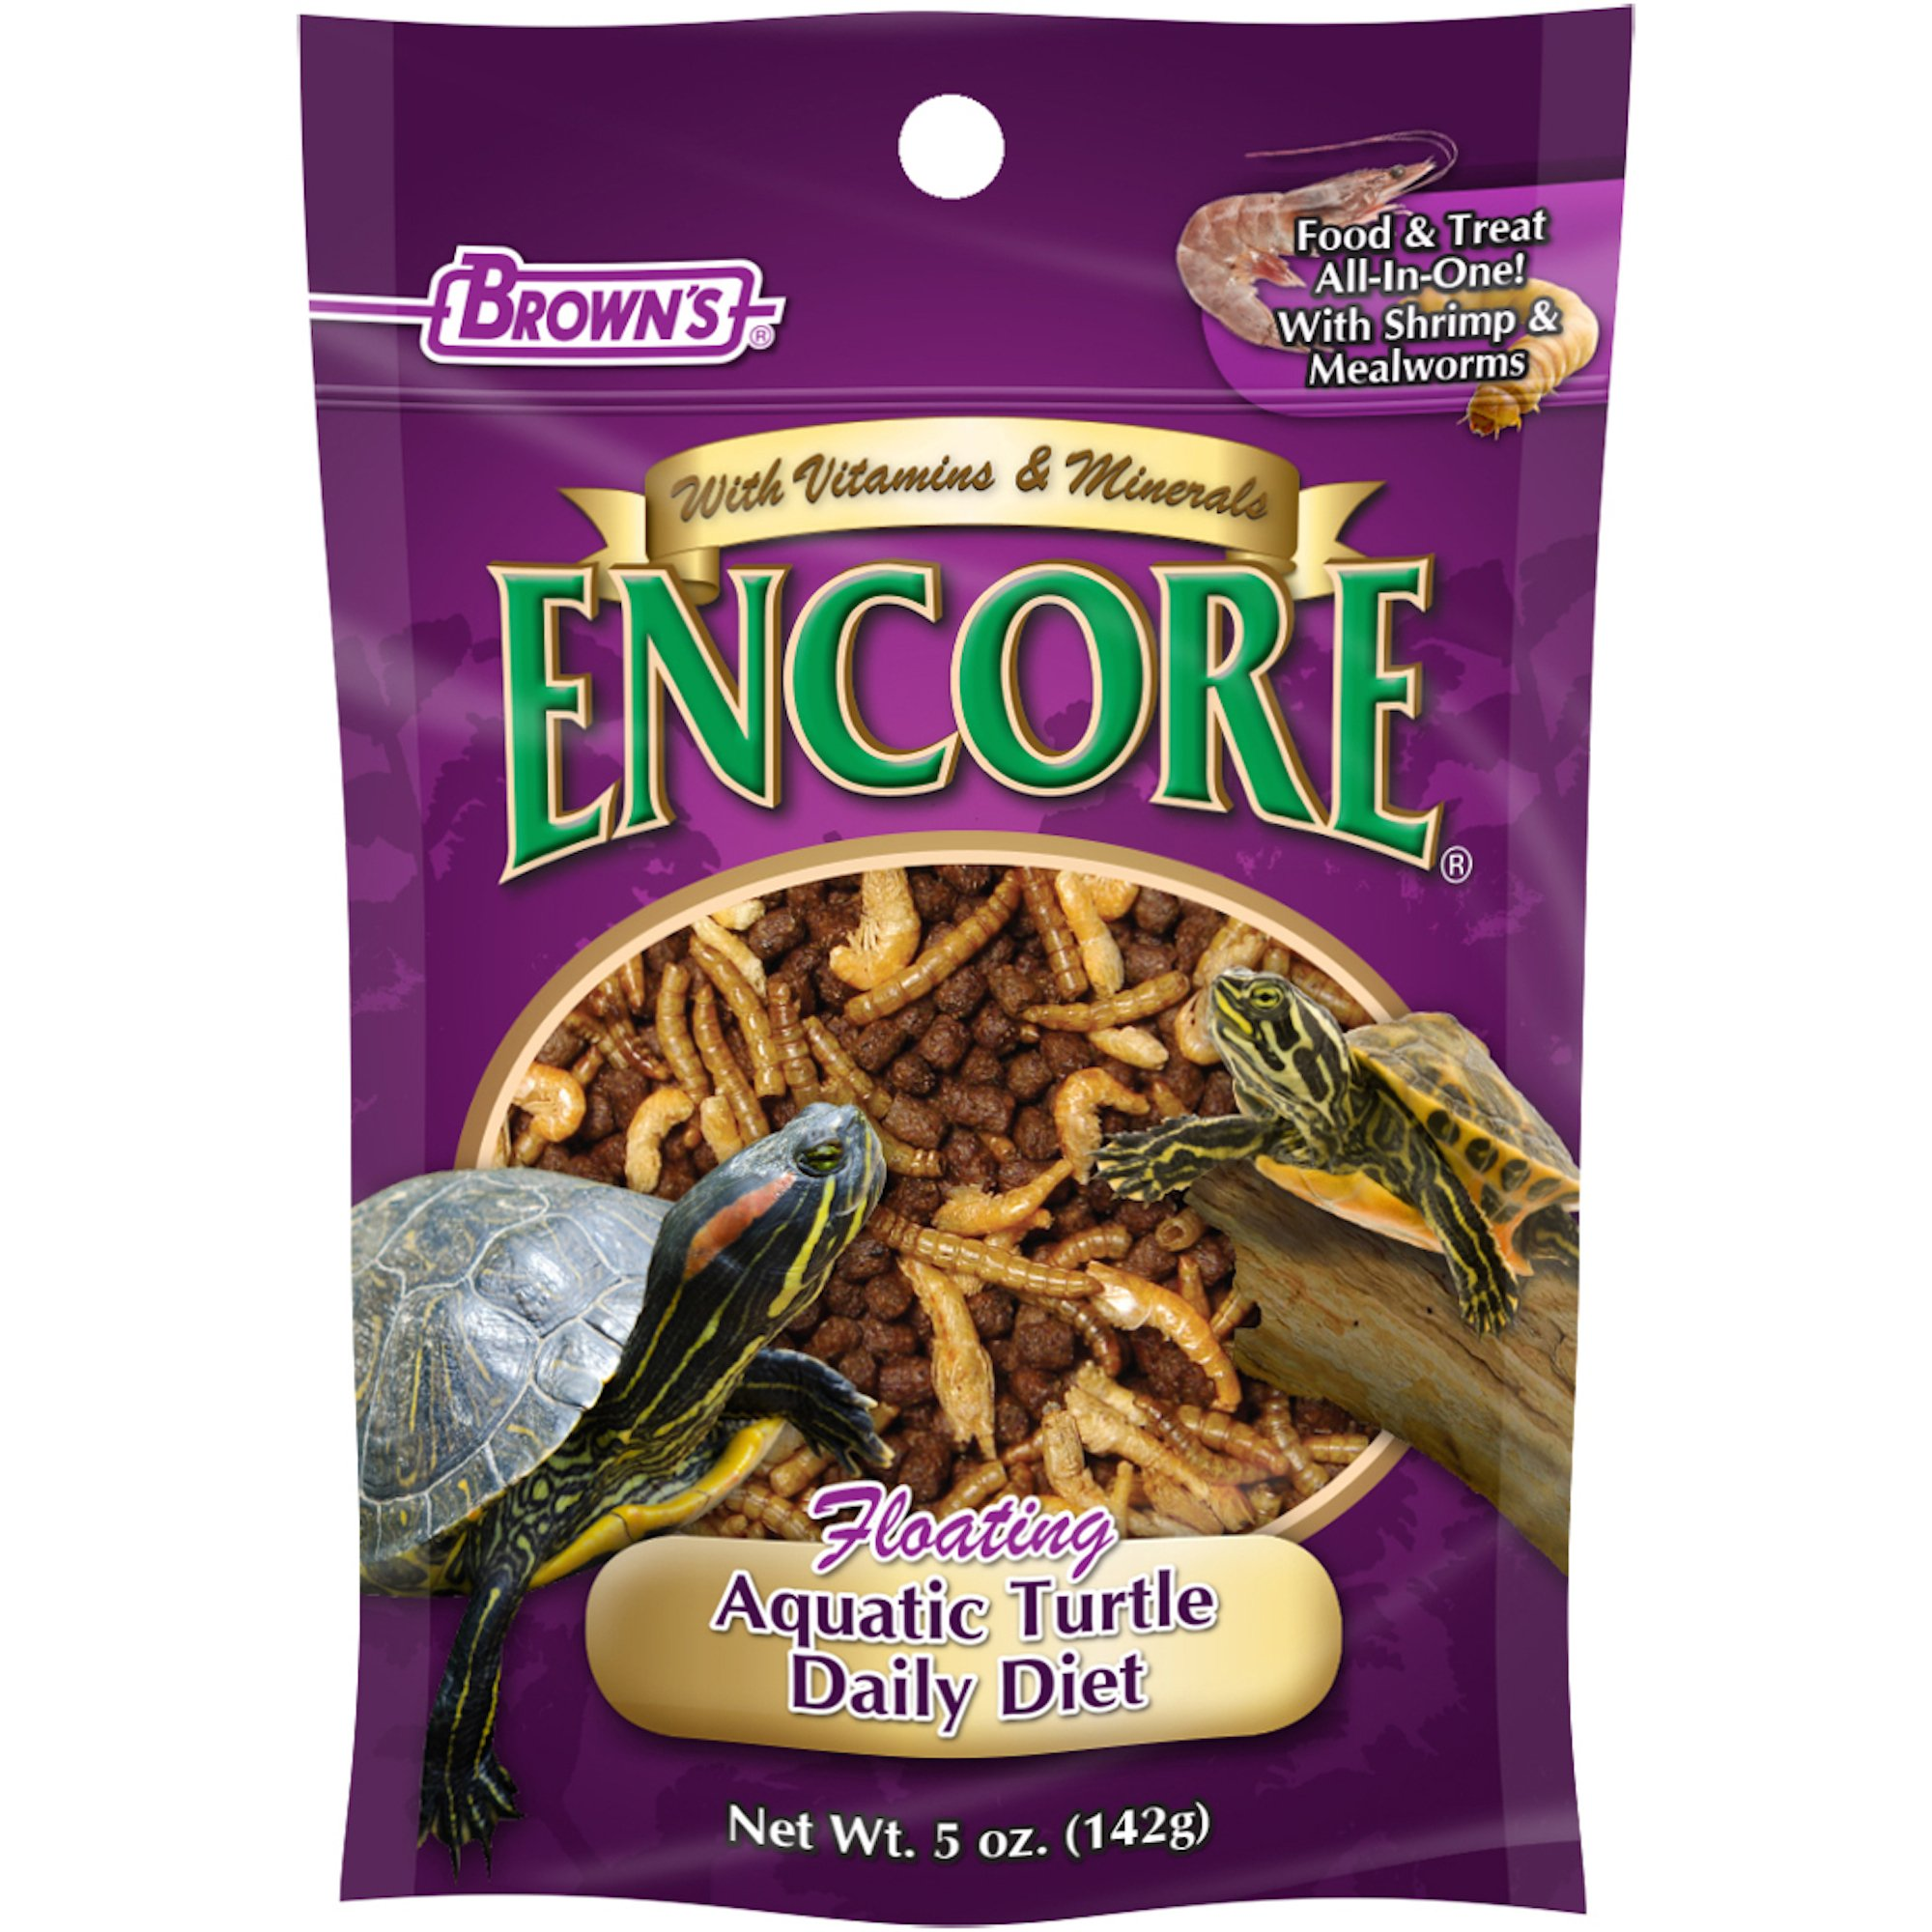 Brown's Encore Shrimp & Mealworm Floating Aquatic Turtle Food